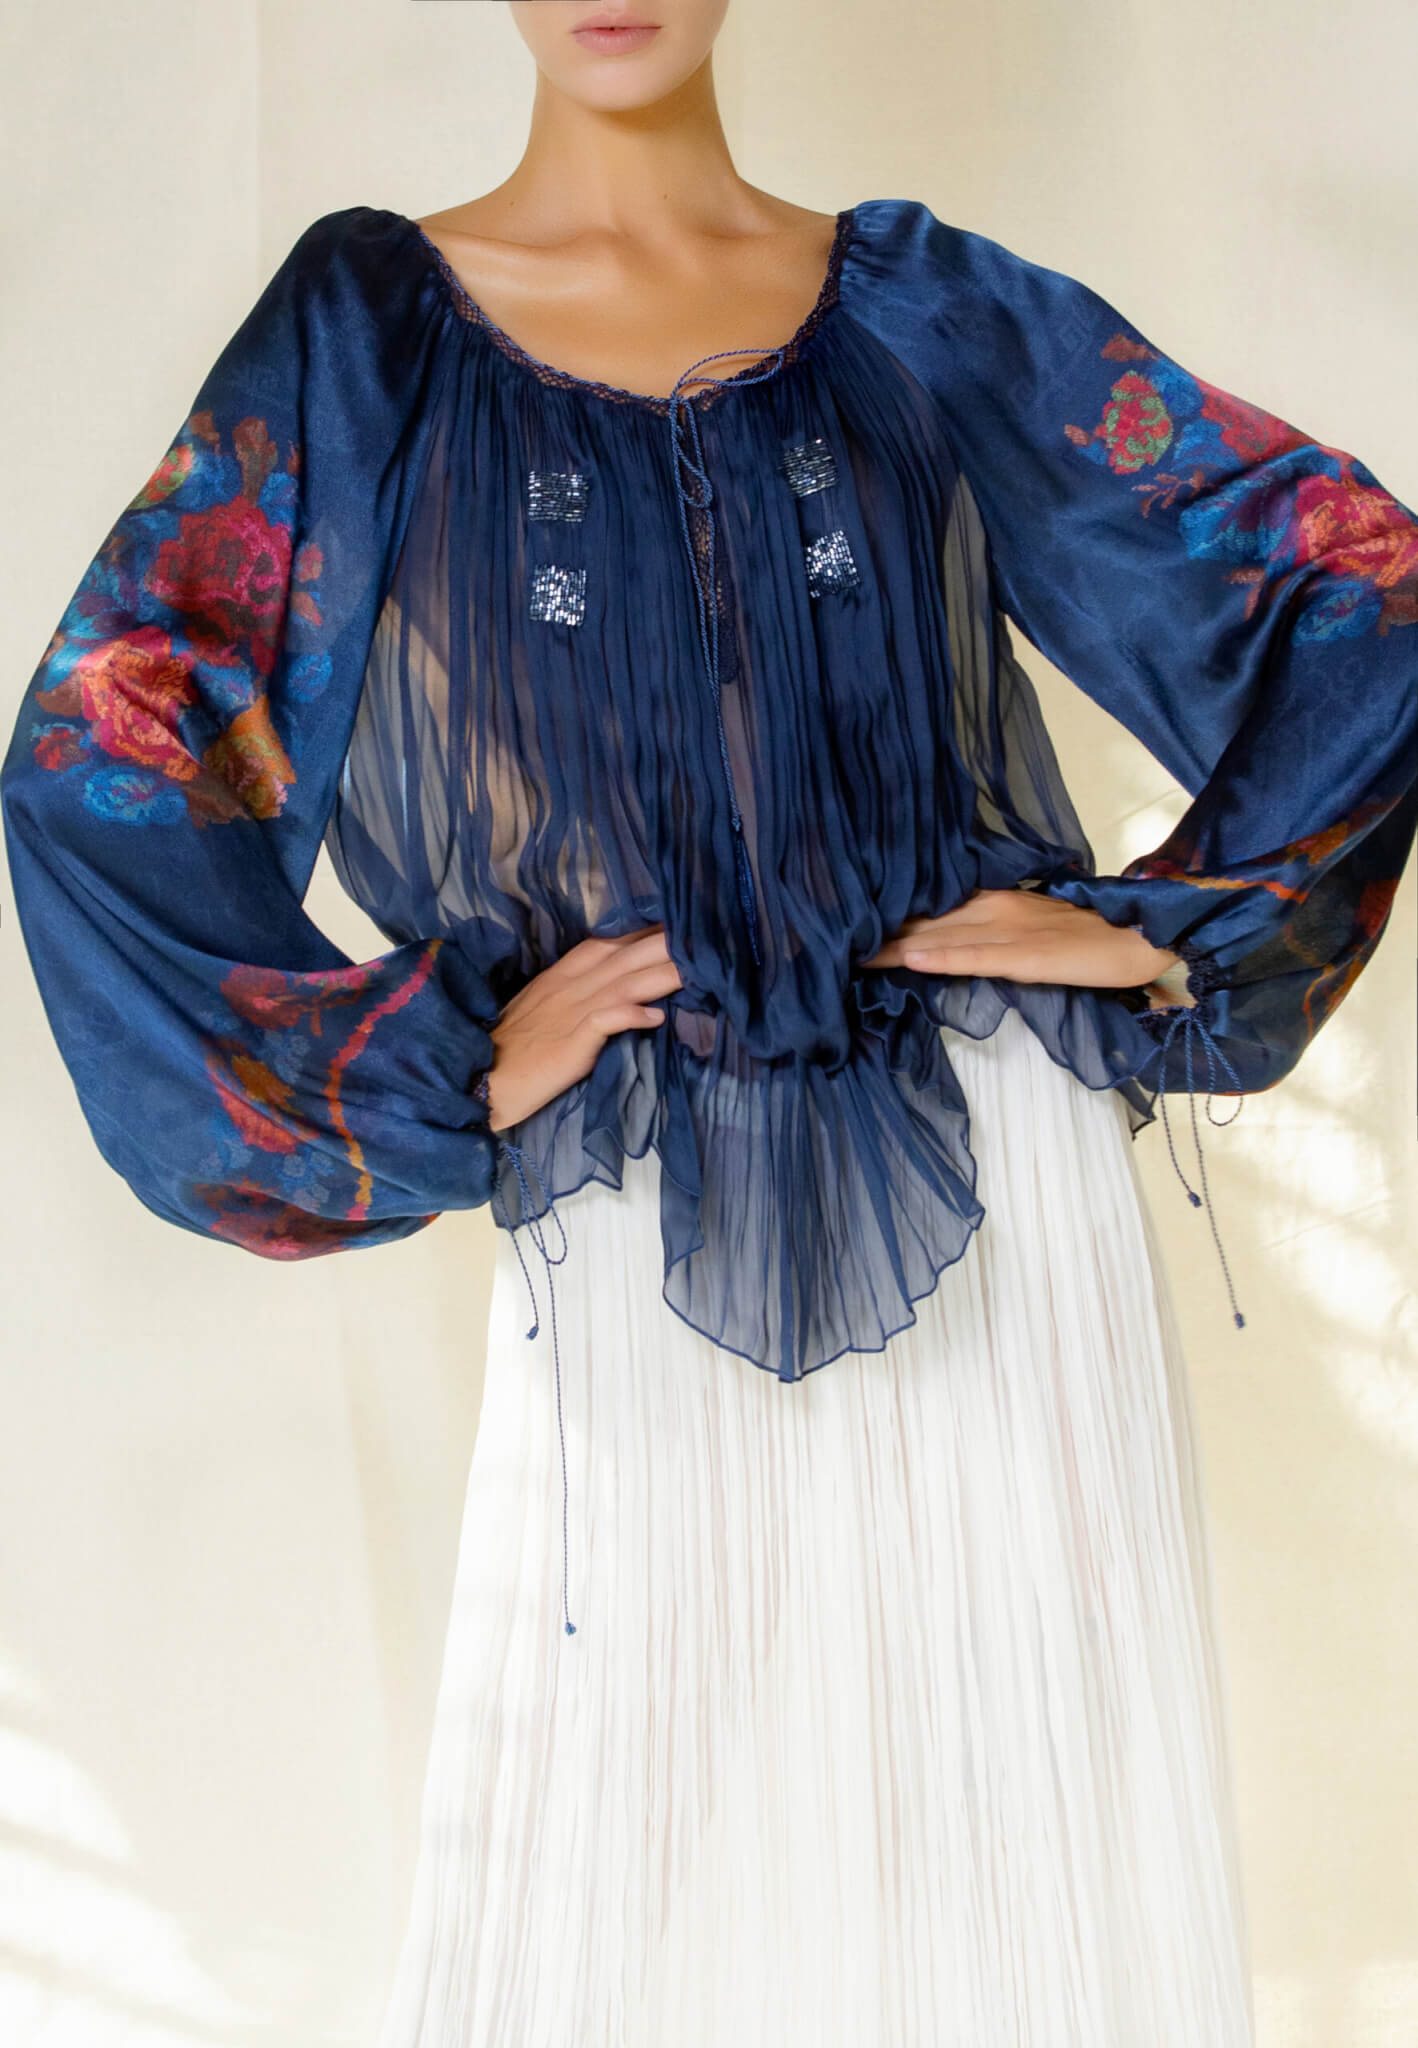 Silk blouse with print and beads